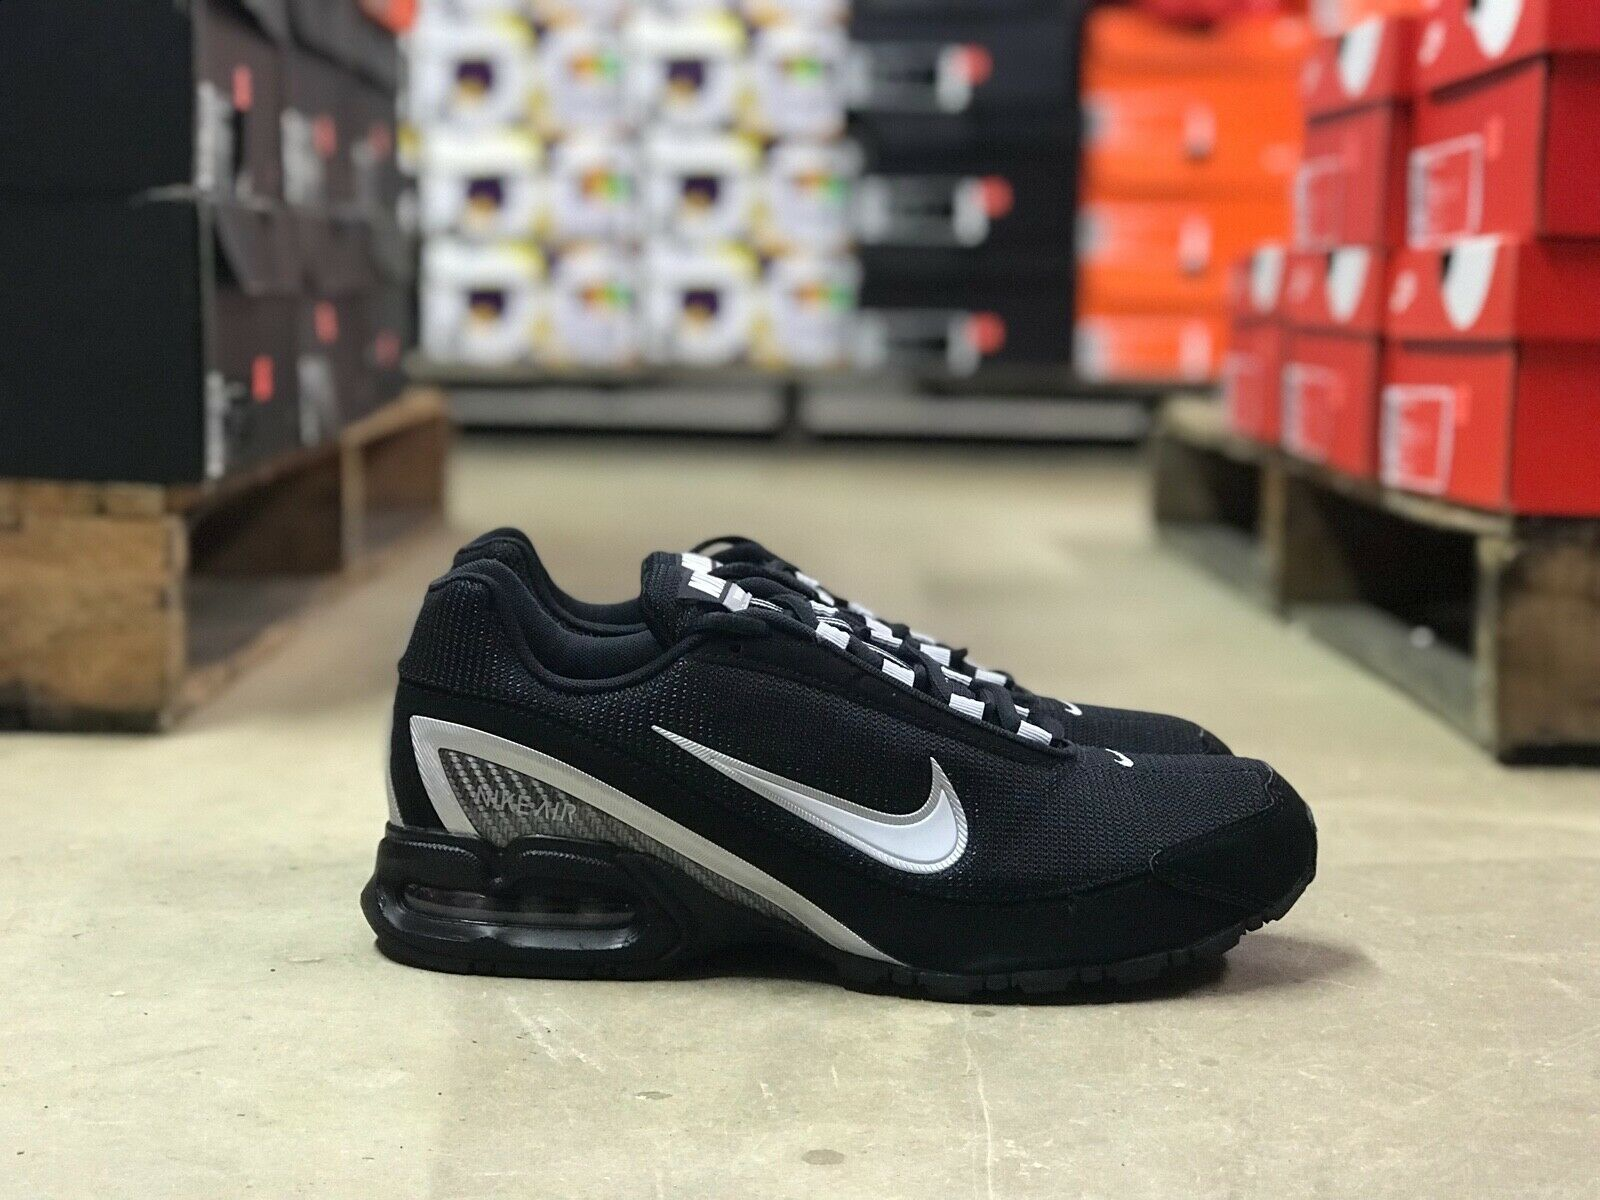 Nike Air Max Torch 3 Mens Running Shoes BlackWhite 319116 011 NEW All Sizes